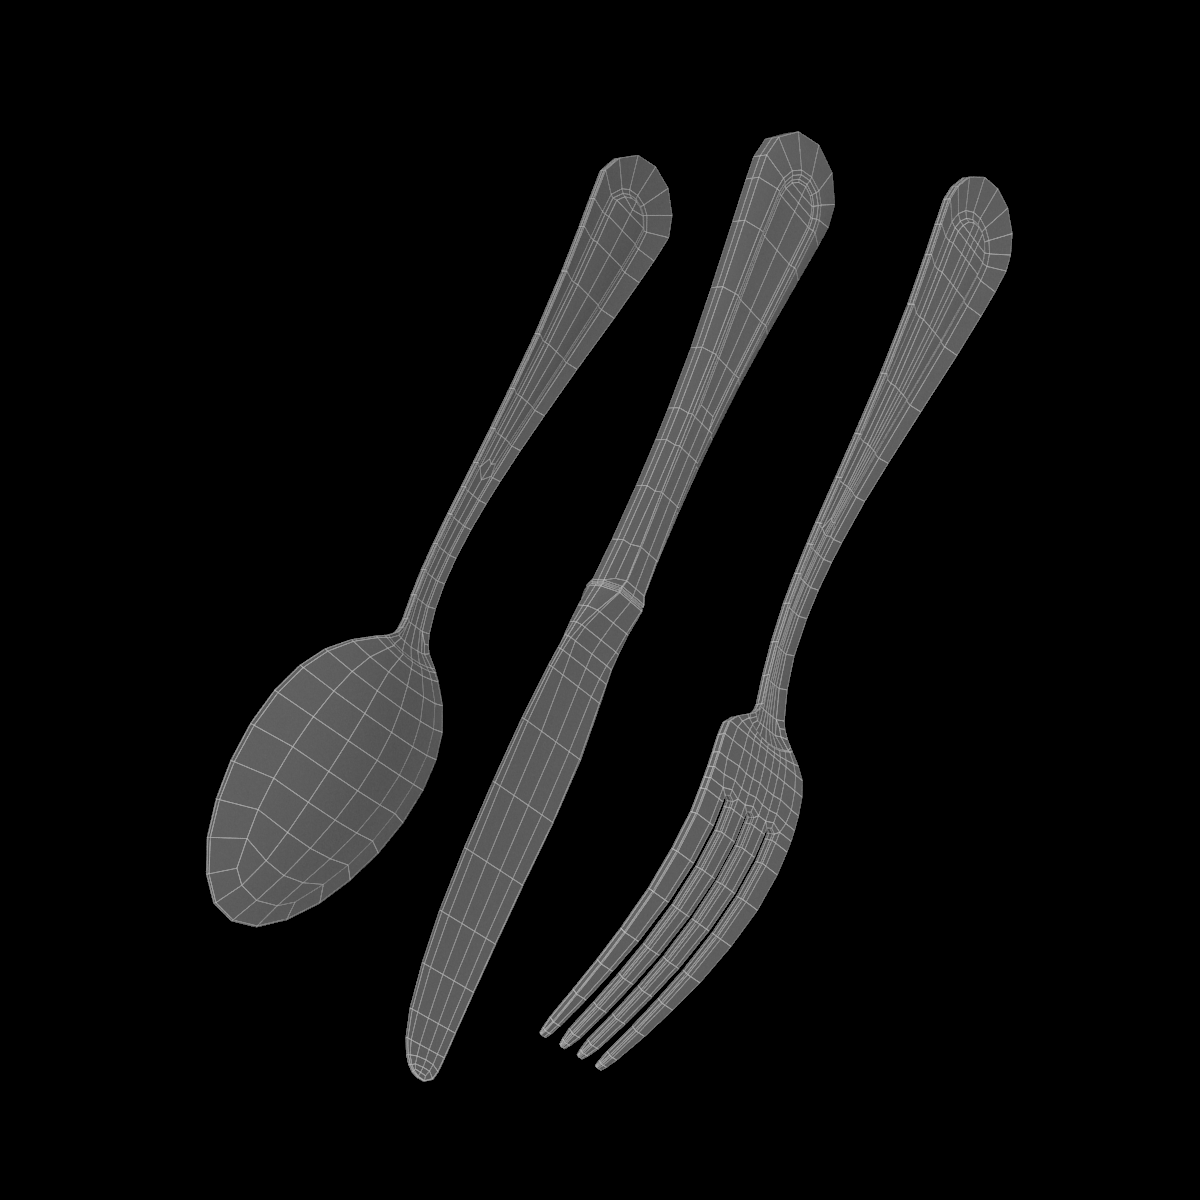 table dinner knife, fork, spoon classic cutlery 3d model 3ds max fbx c4d ma mb  obj 284635